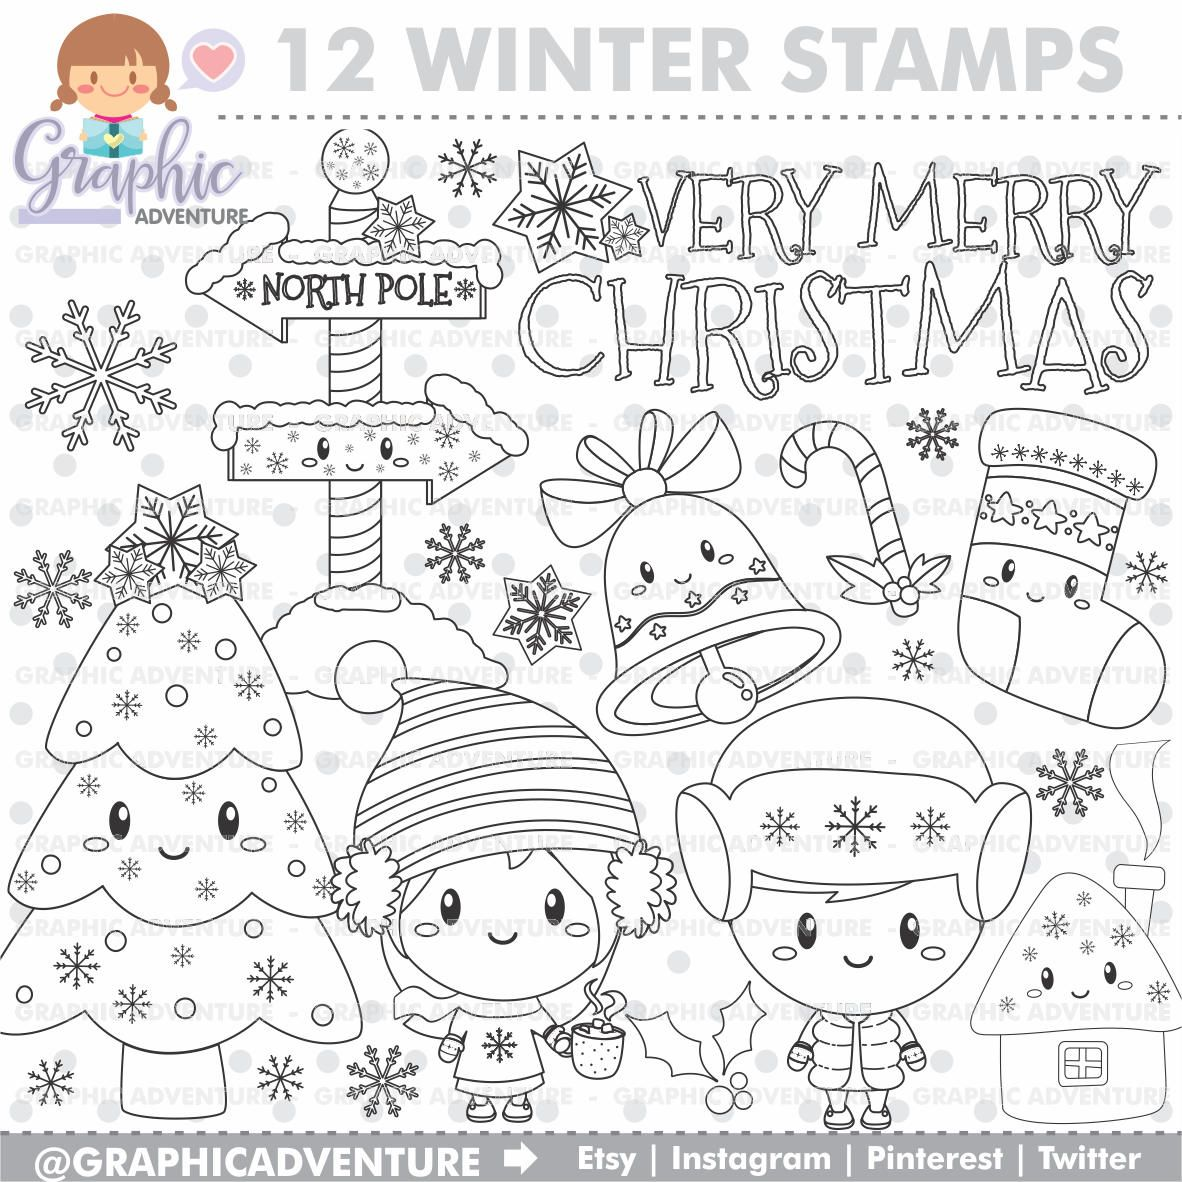 Off christmas stamp winter stamp very merry christmas